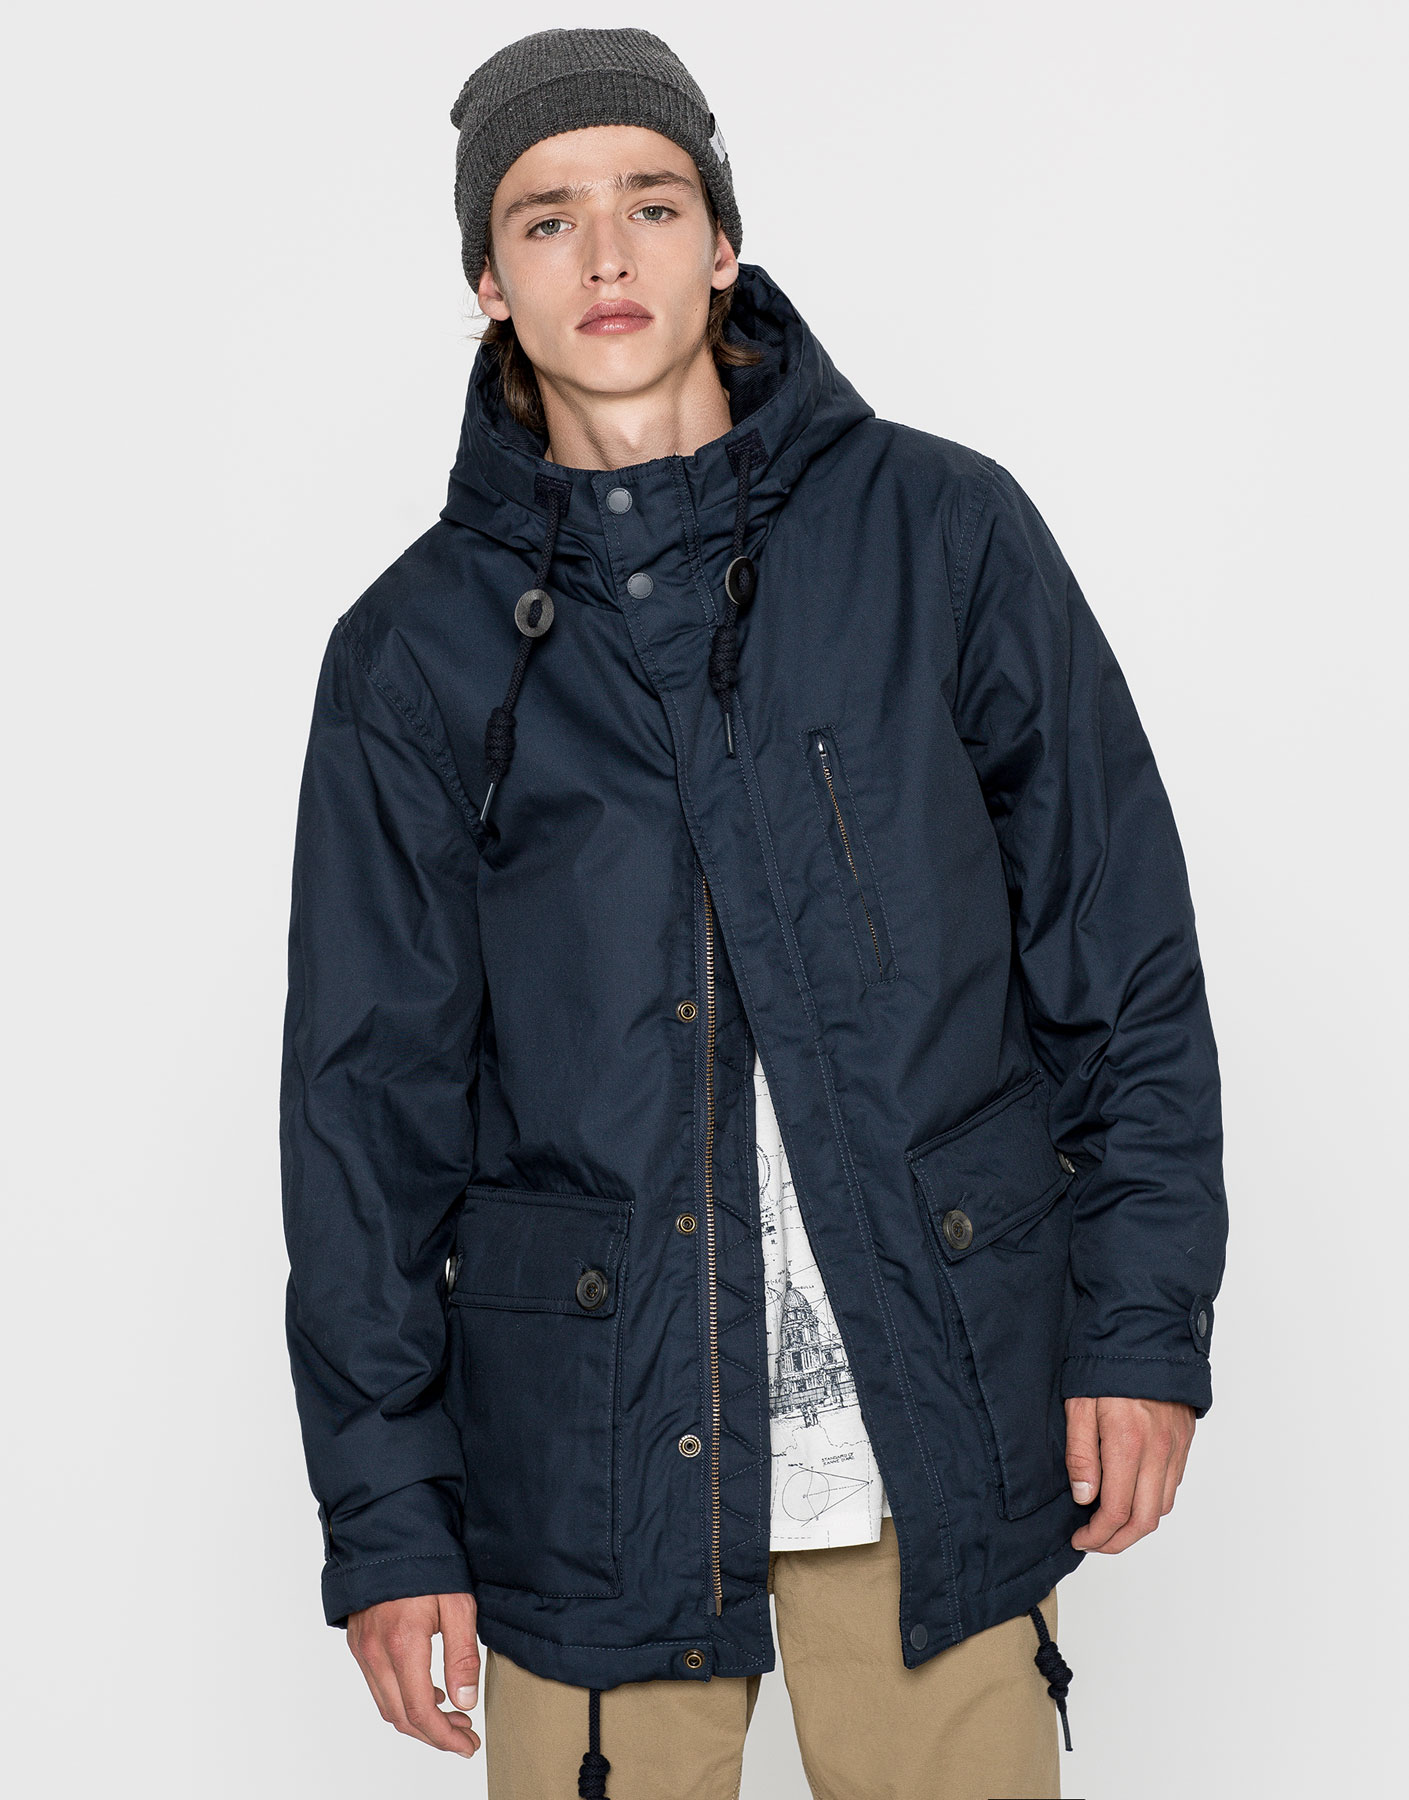 Cotton parka with pockets